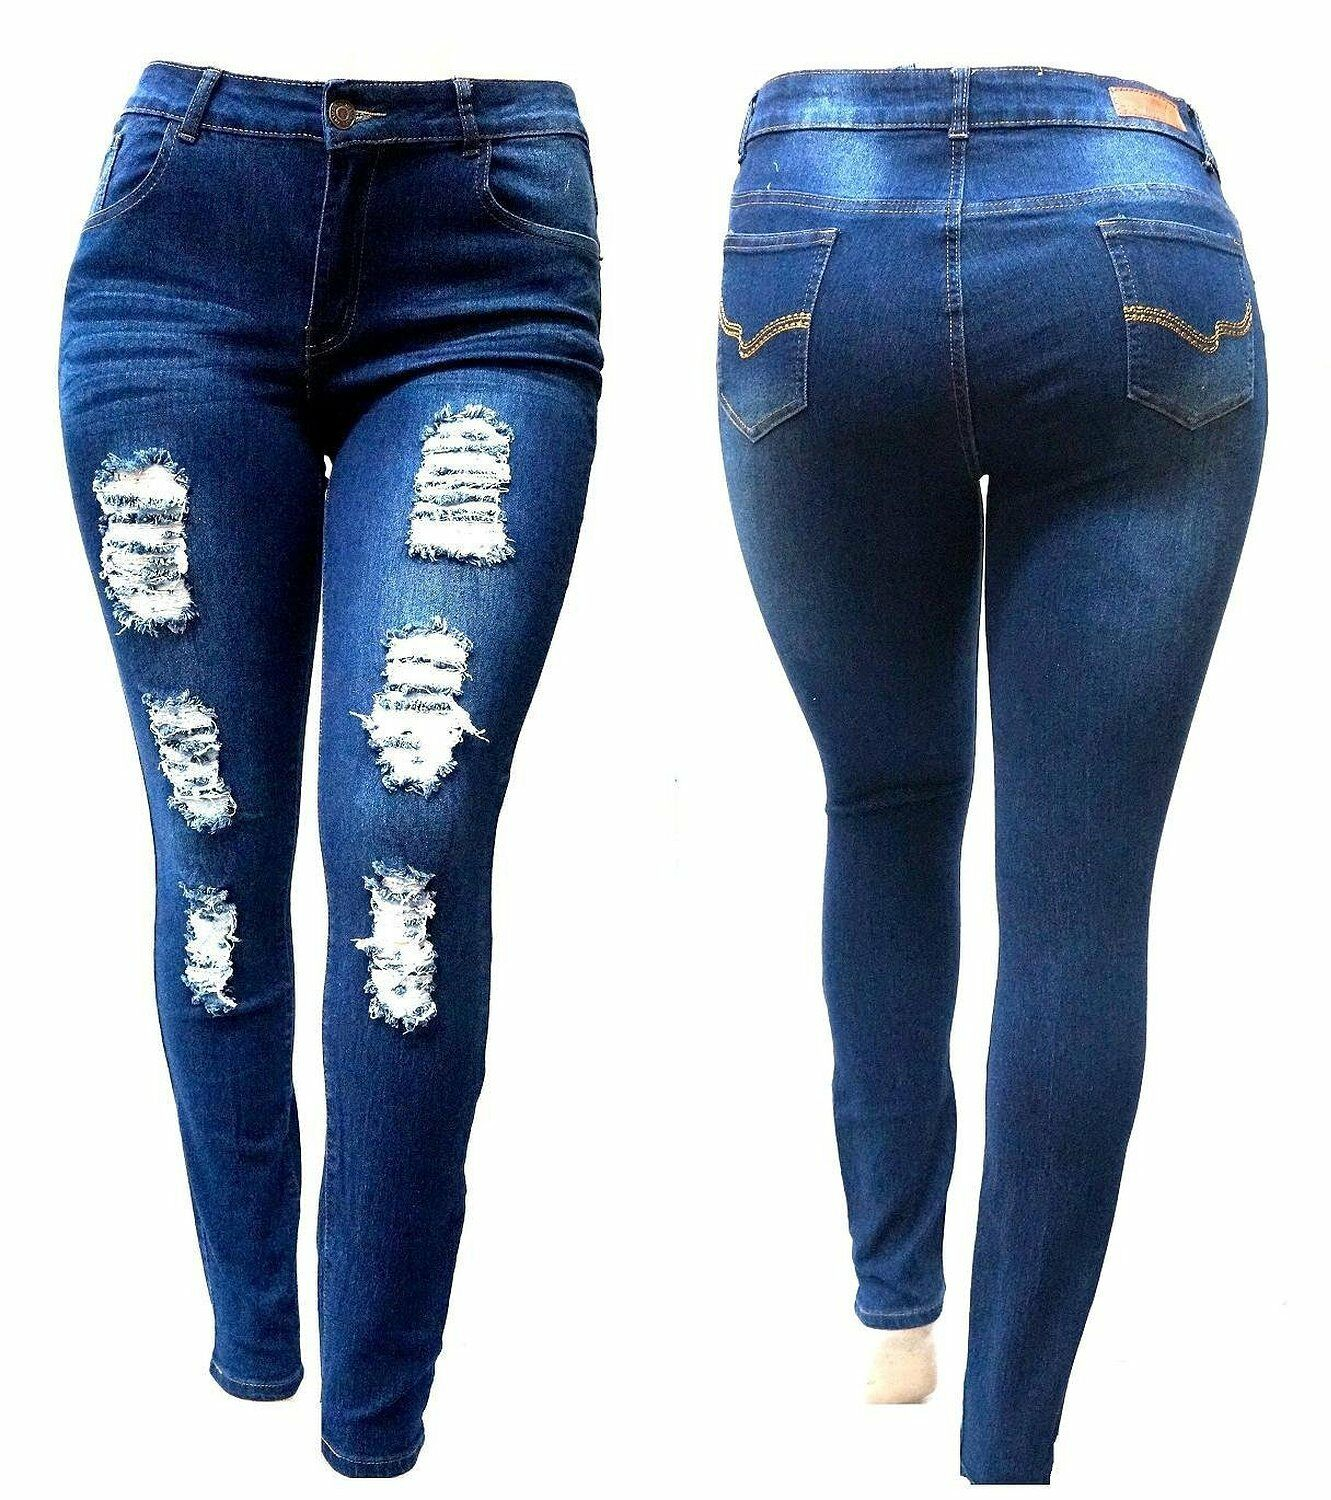 a058c89ca0c stands above the crowd as a premium PLUS SIZE denim Distressed jeans PANTS  brand in its efforts to empower customers with their sexy, comfortable and  ...